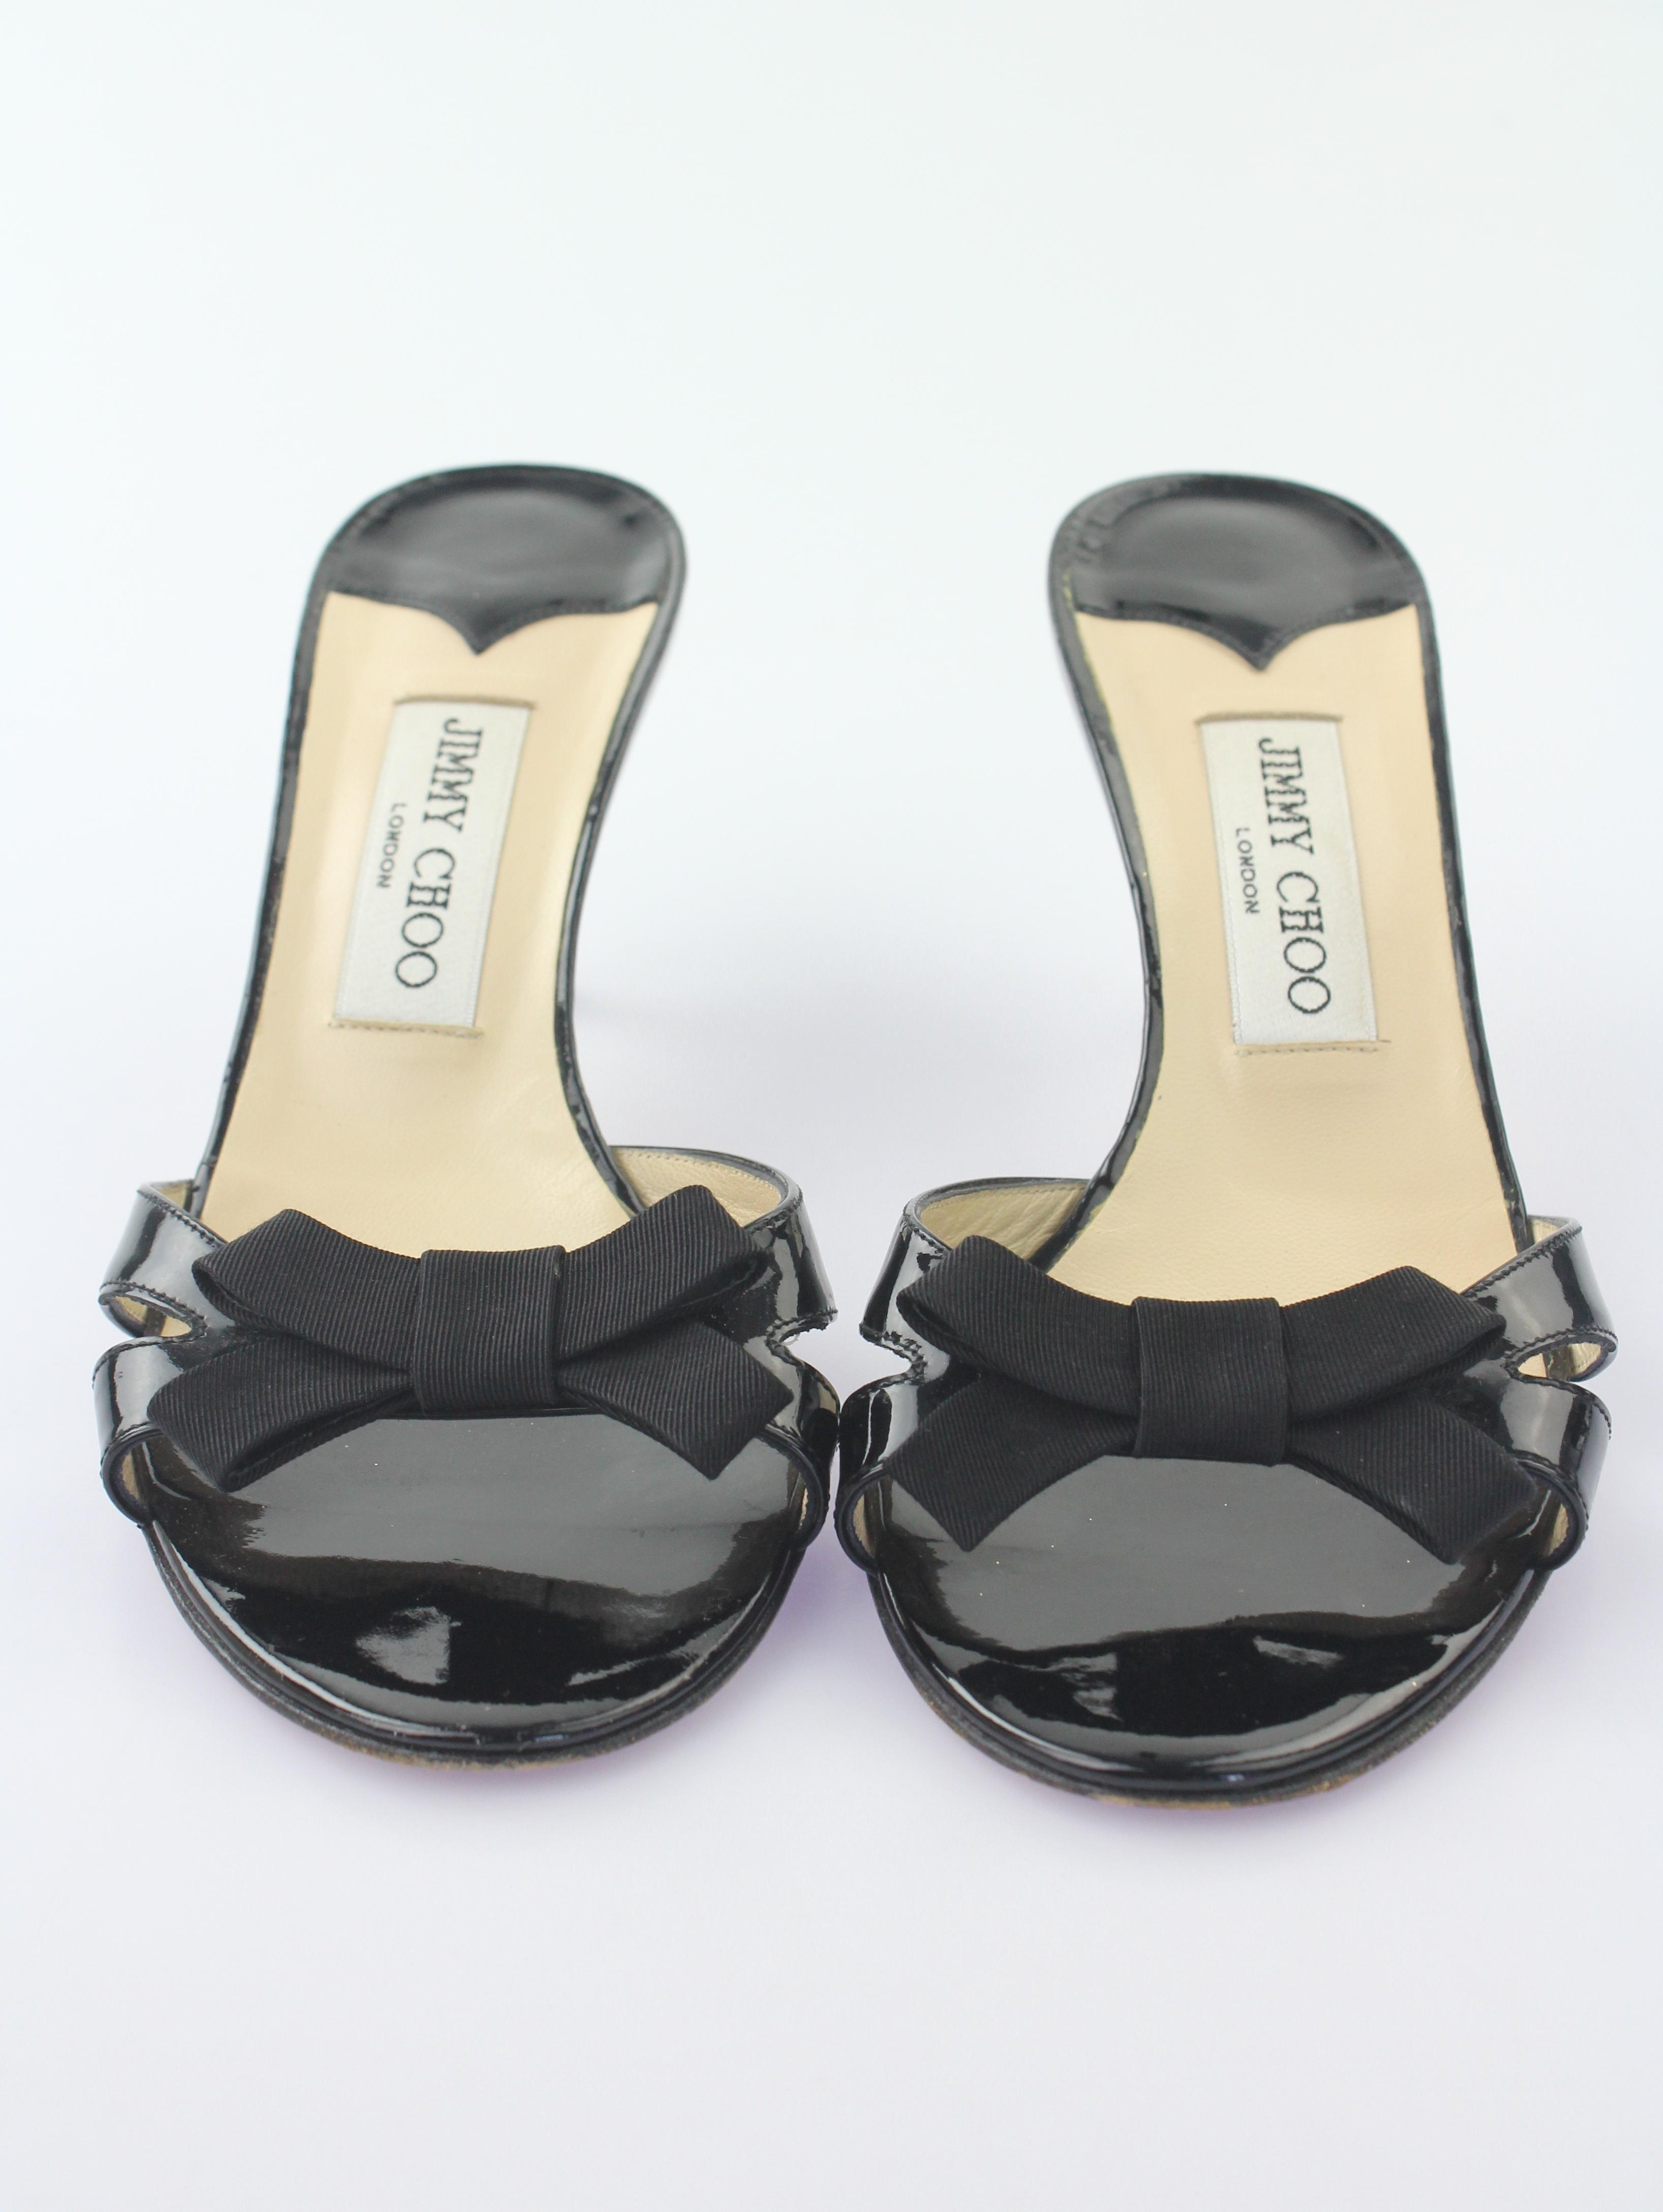 b9b3aba35324 US Jimmy Choo Black Patent Leather Bow Bow Bow Sandals Size EU 38 (Approx.  US ...